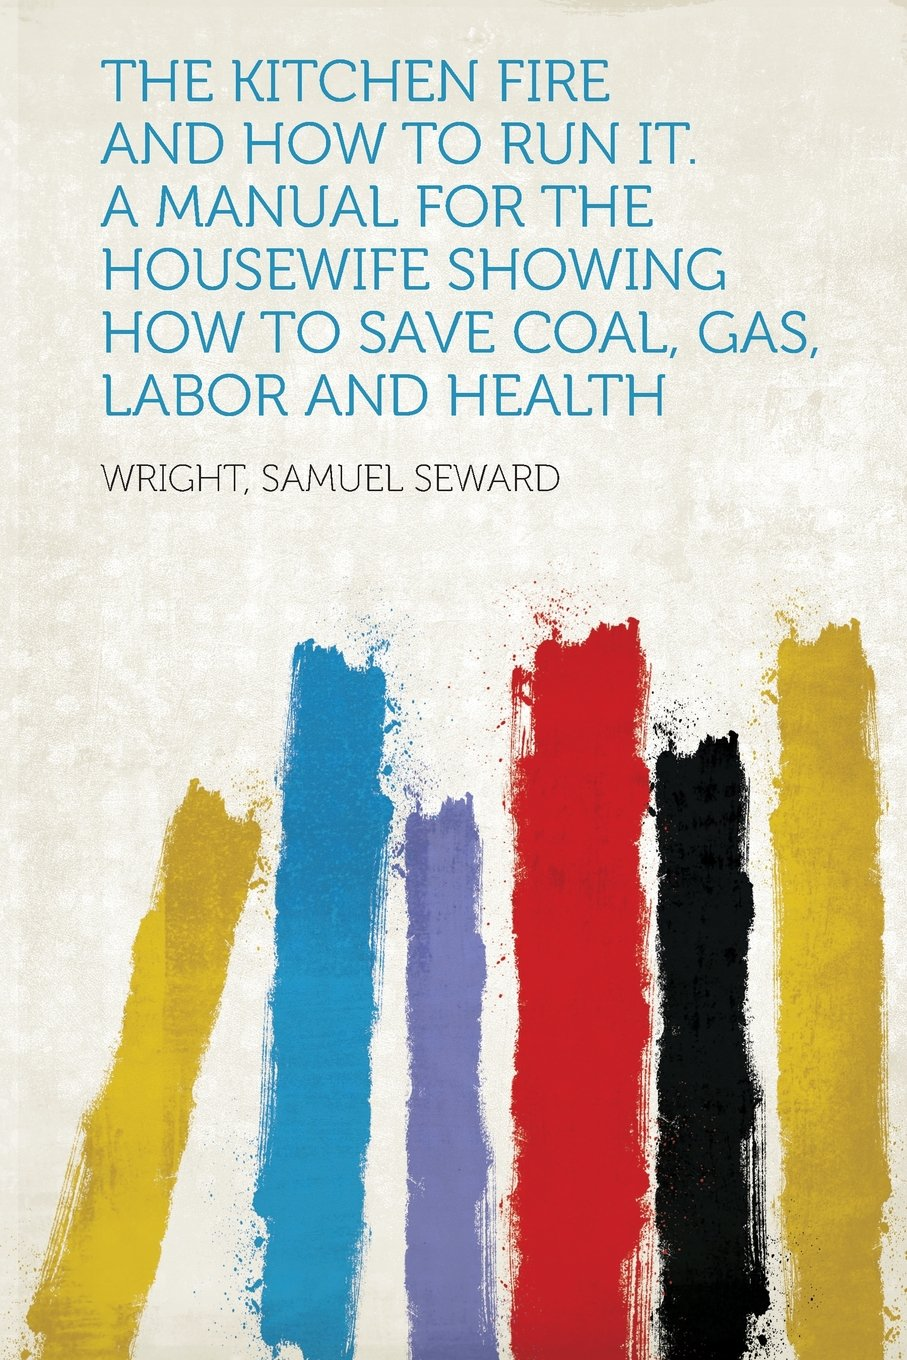 The Kitchen Fire and How to Run It. A Manual for the Housewife Showing How to Save Coal, Gas, Labor and Health pdf epub